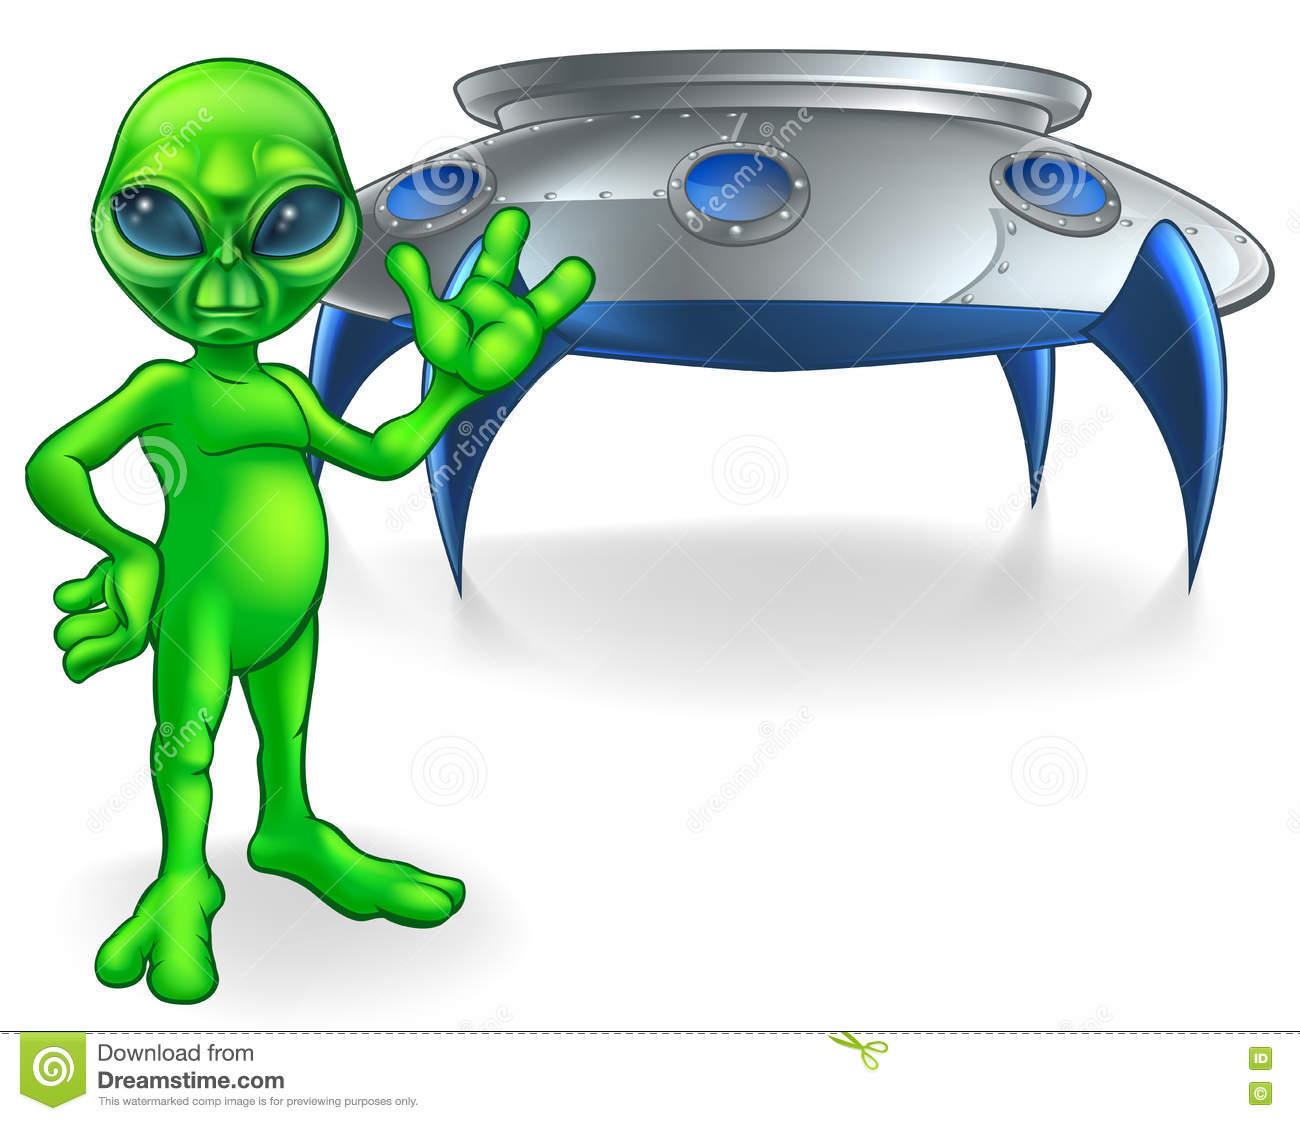 Alien and Flying Saucer Space Ship